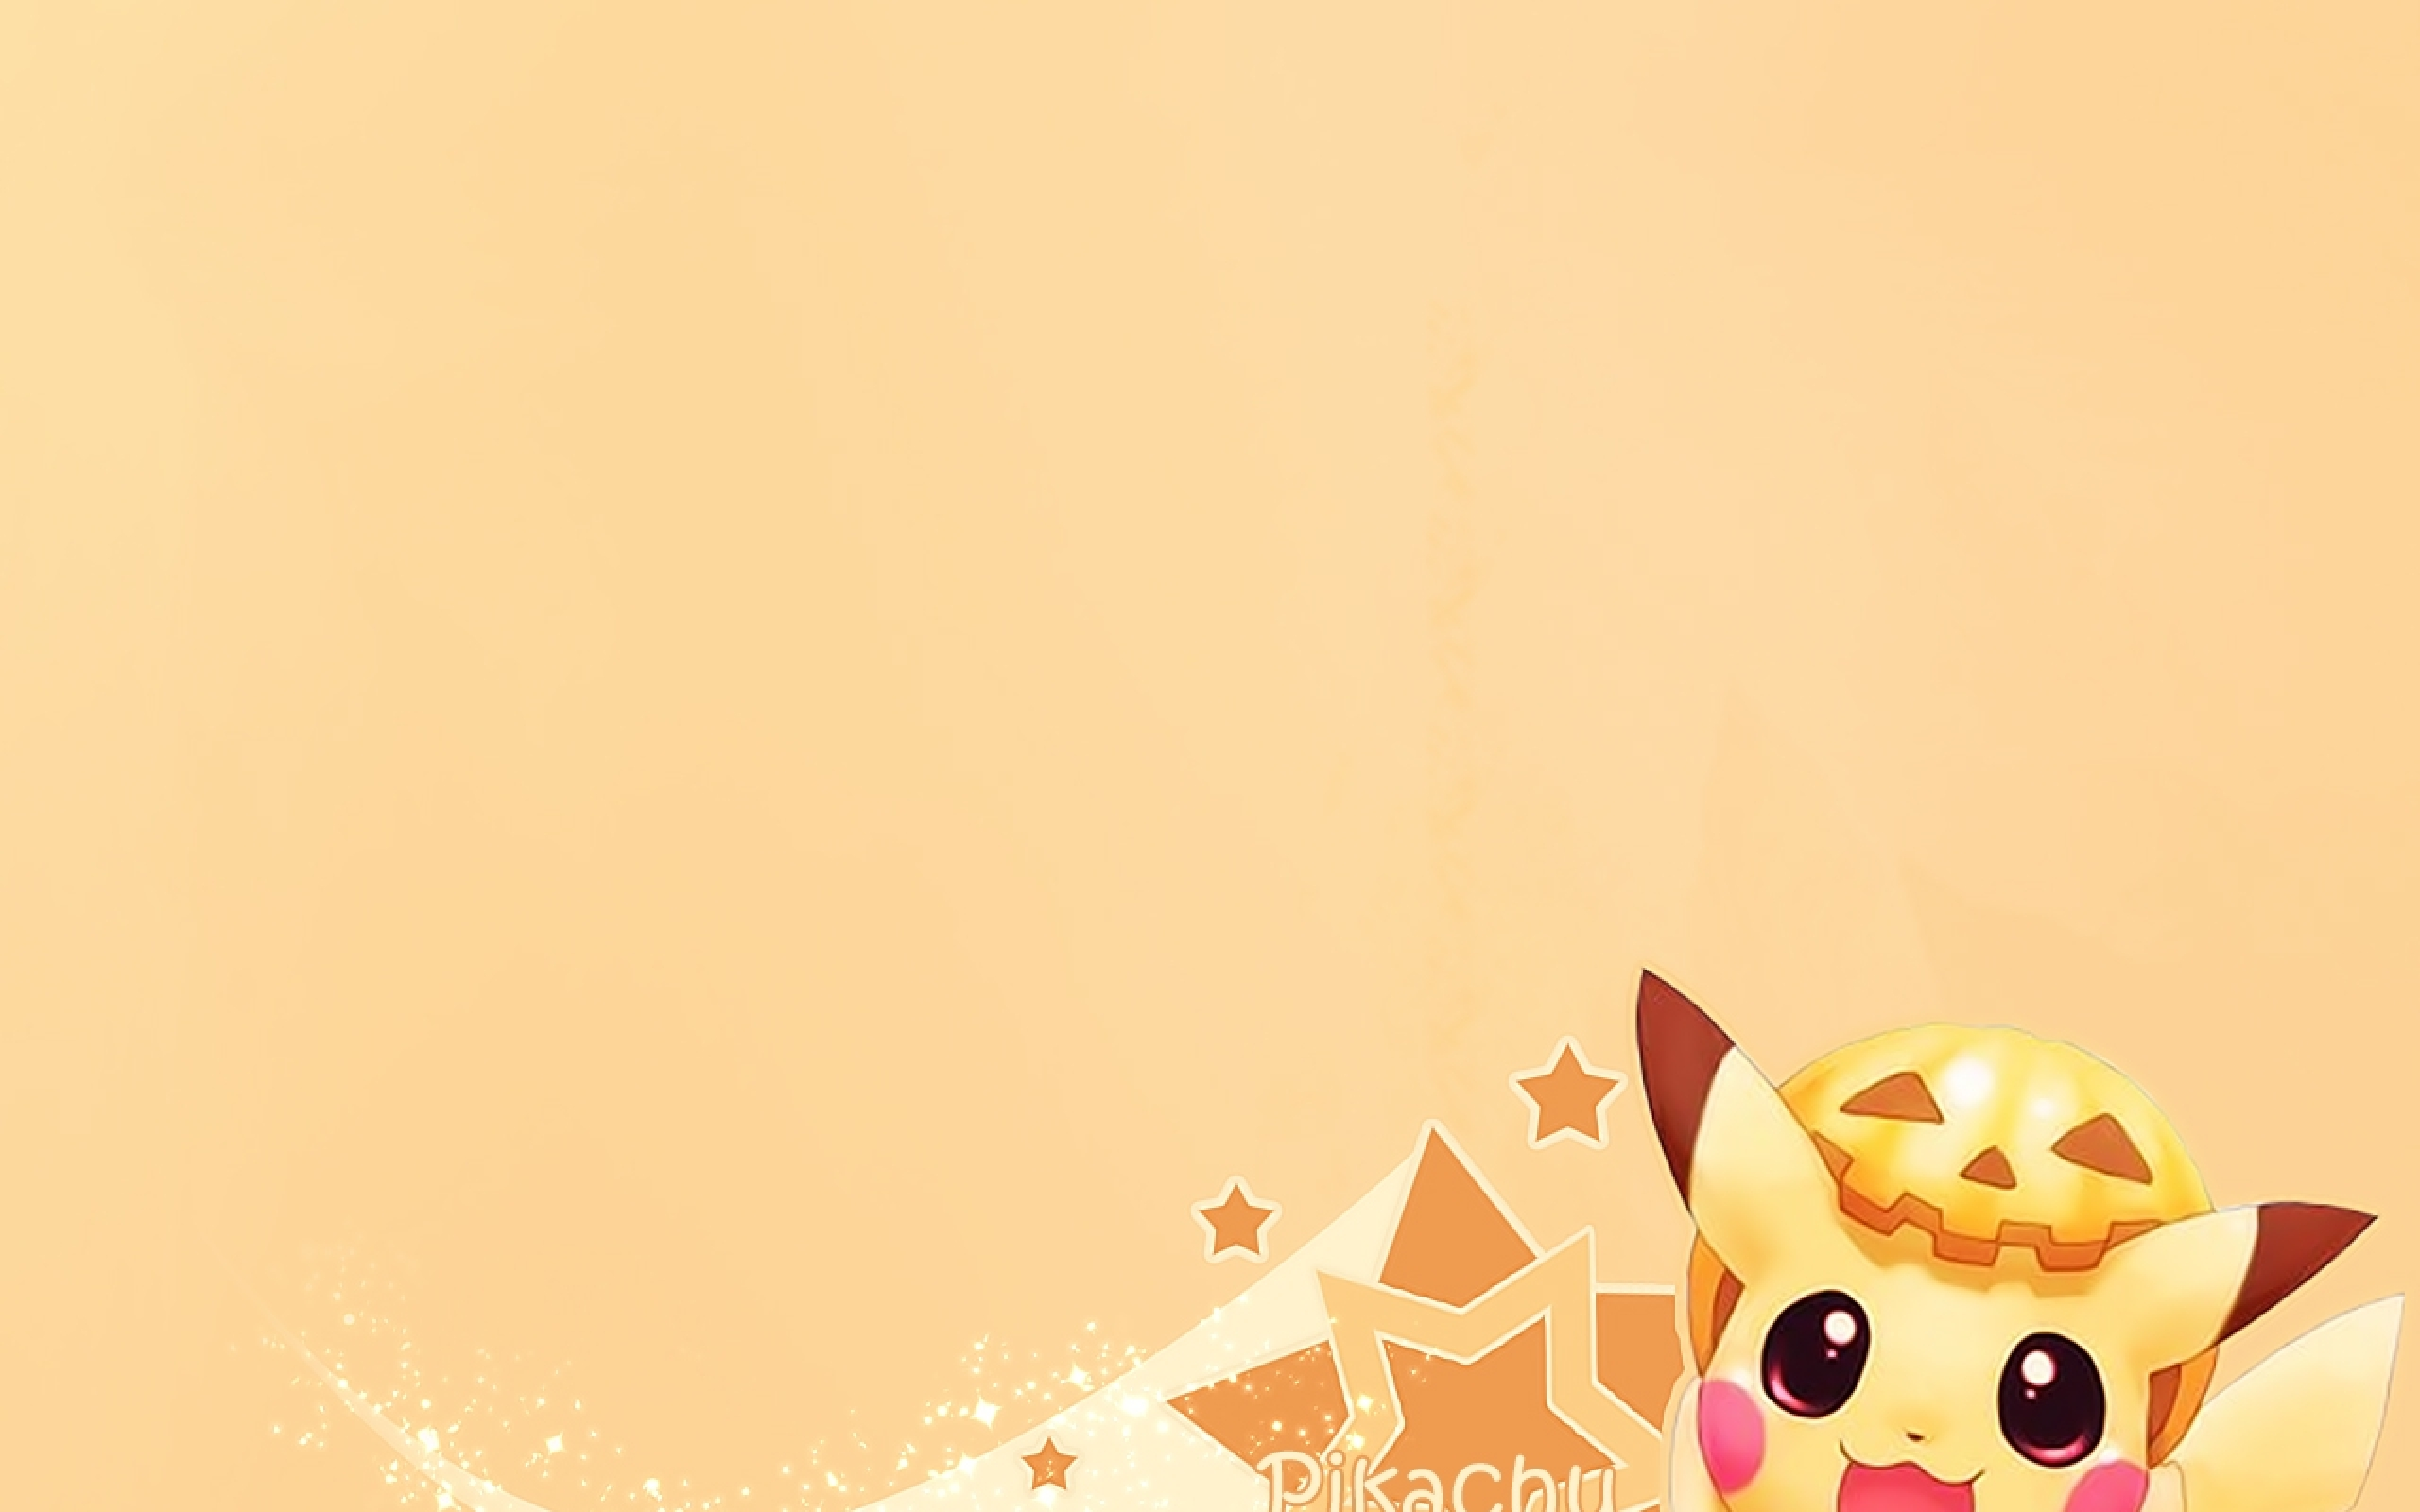 Cute Pikachu Wallpapers HD 2560x1600